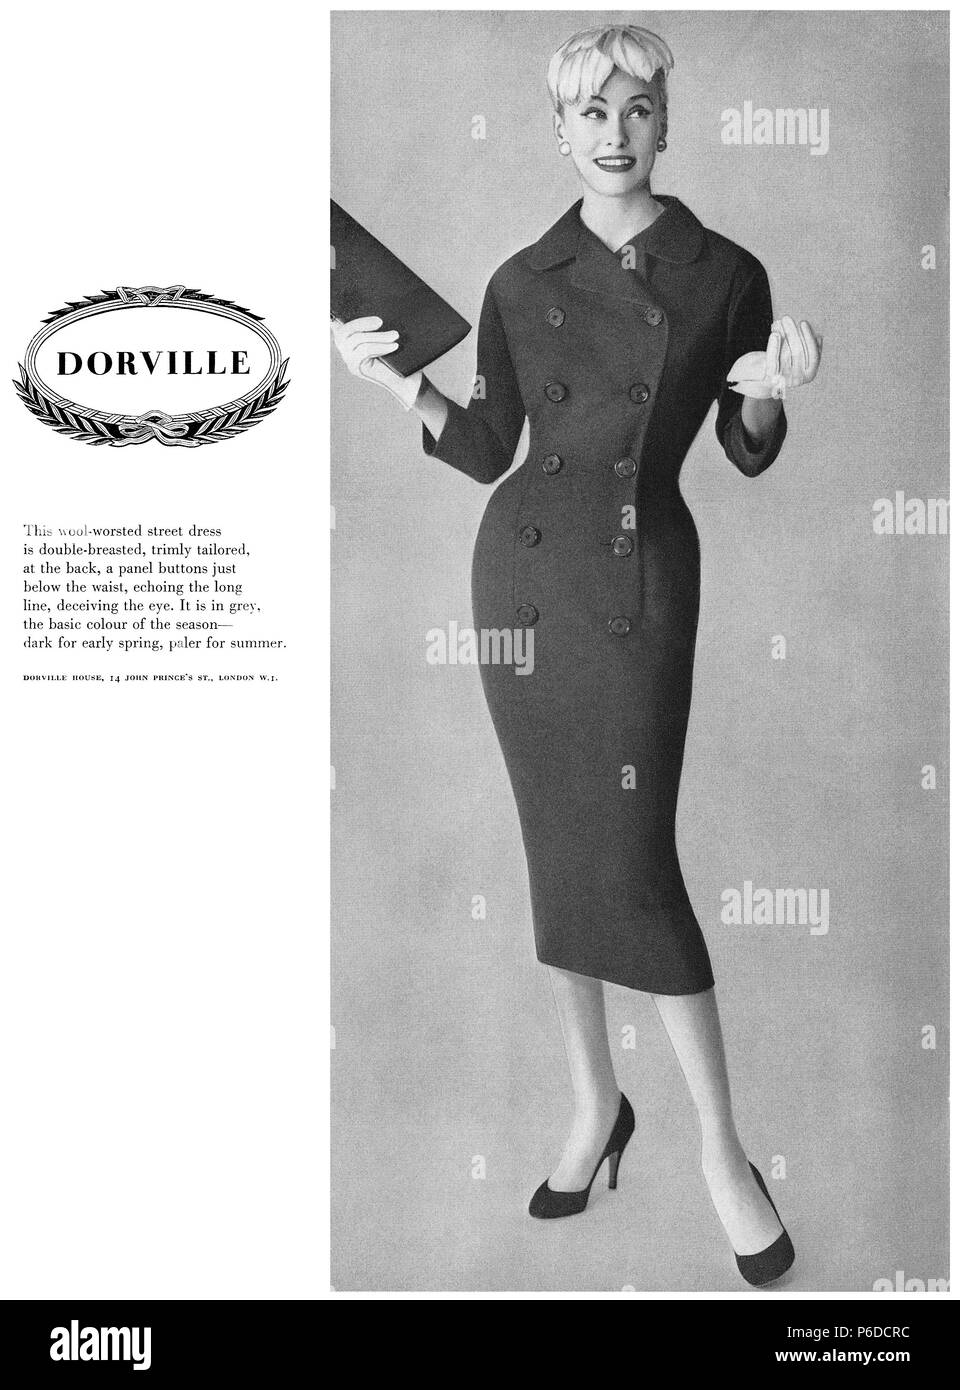 1956 British advertisement for Dorville fashions. - Stock Image